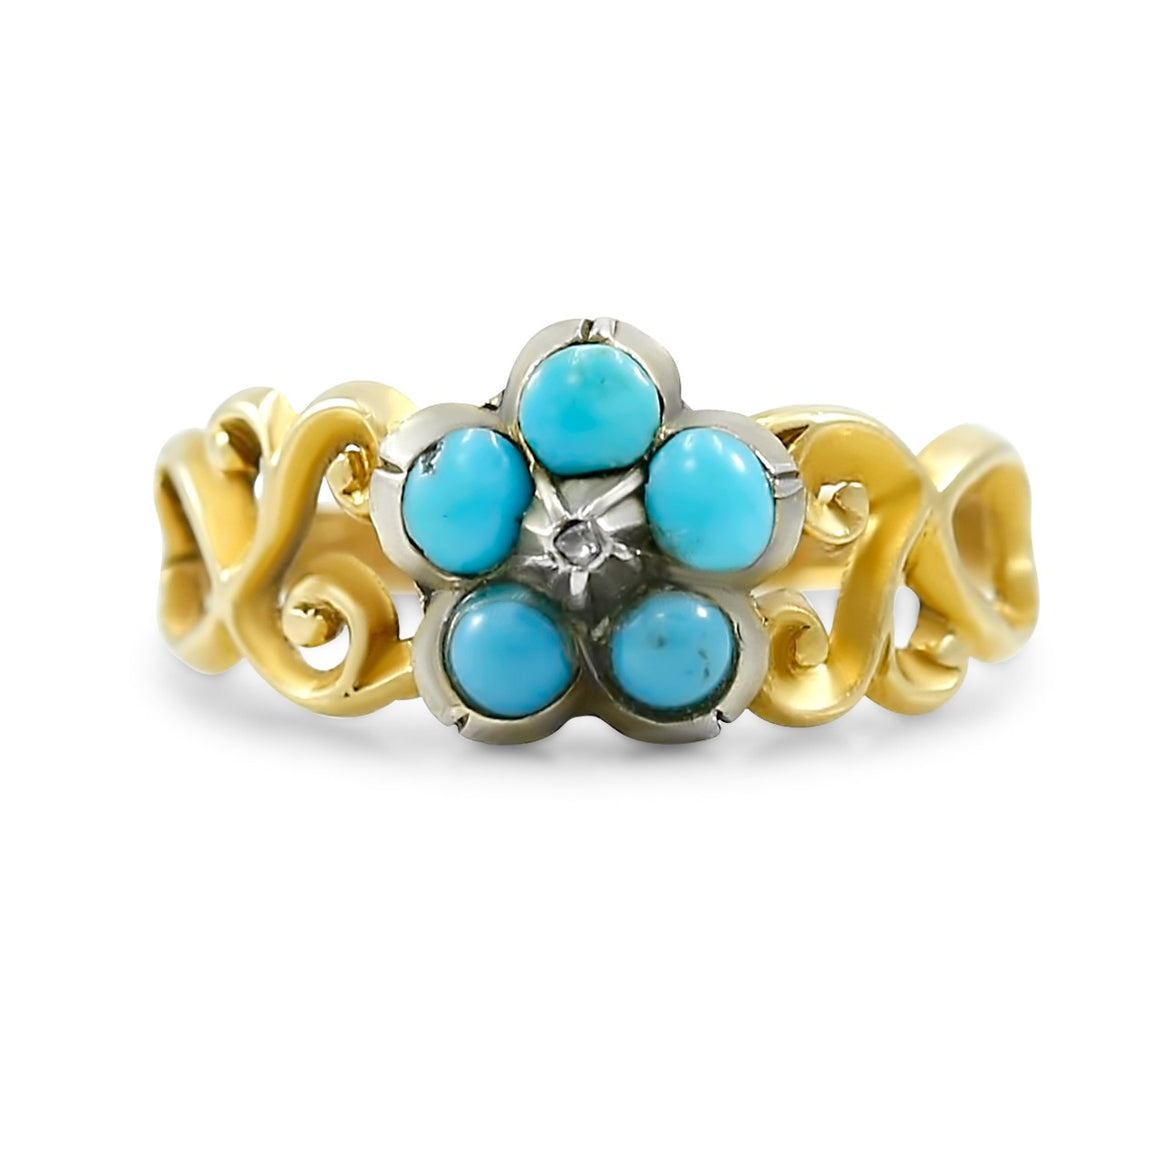 18k yellow gold turquoise antique ring created circa 1870 victorian ring